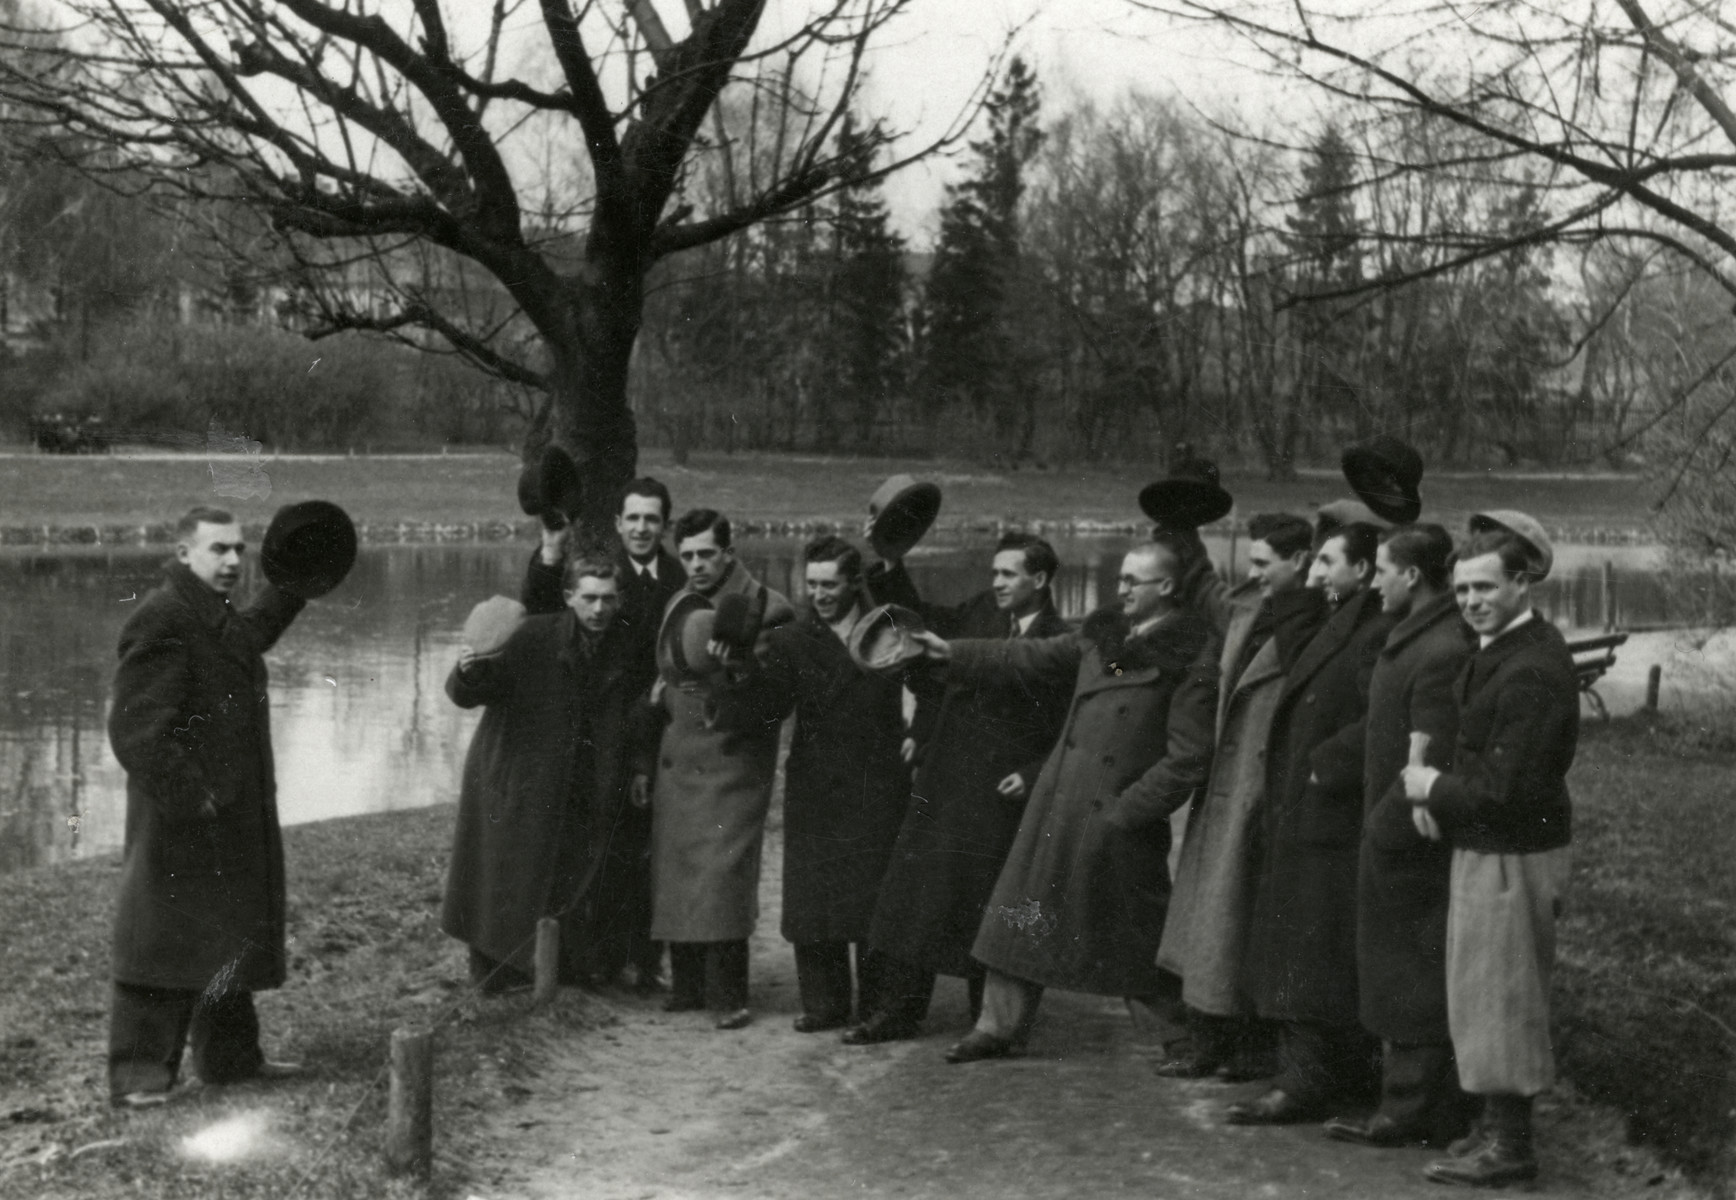 A group of friends waves their hats in a farewell to Isaac Rembichowski, who was leaving for Cuba.   He later came to the United States.  Chaim Leichter is pictured second from the left.